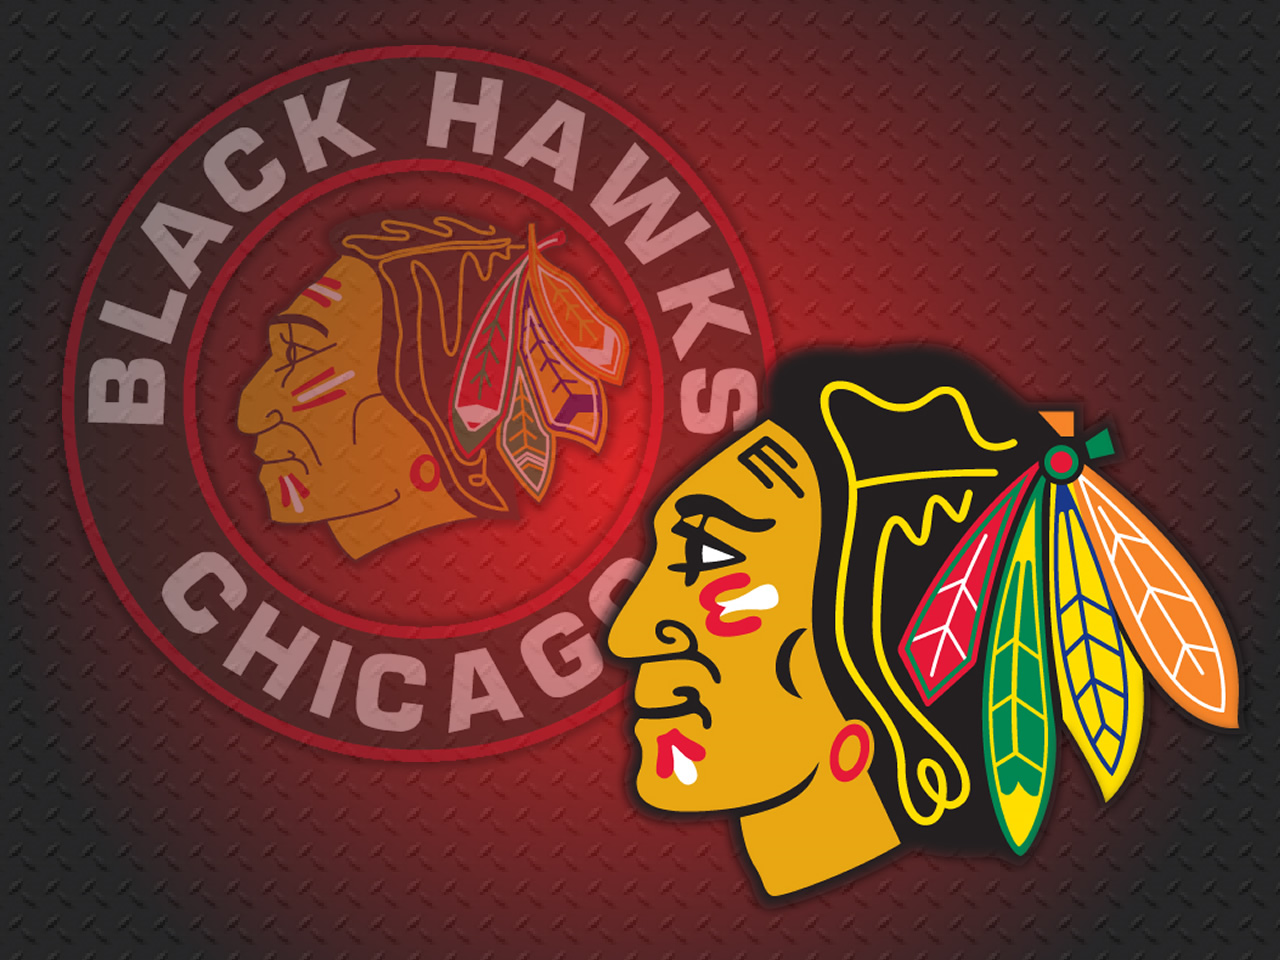 Chicago Blackhawks wallpapers Chicago Blackhawks background   Page 6 1280x960